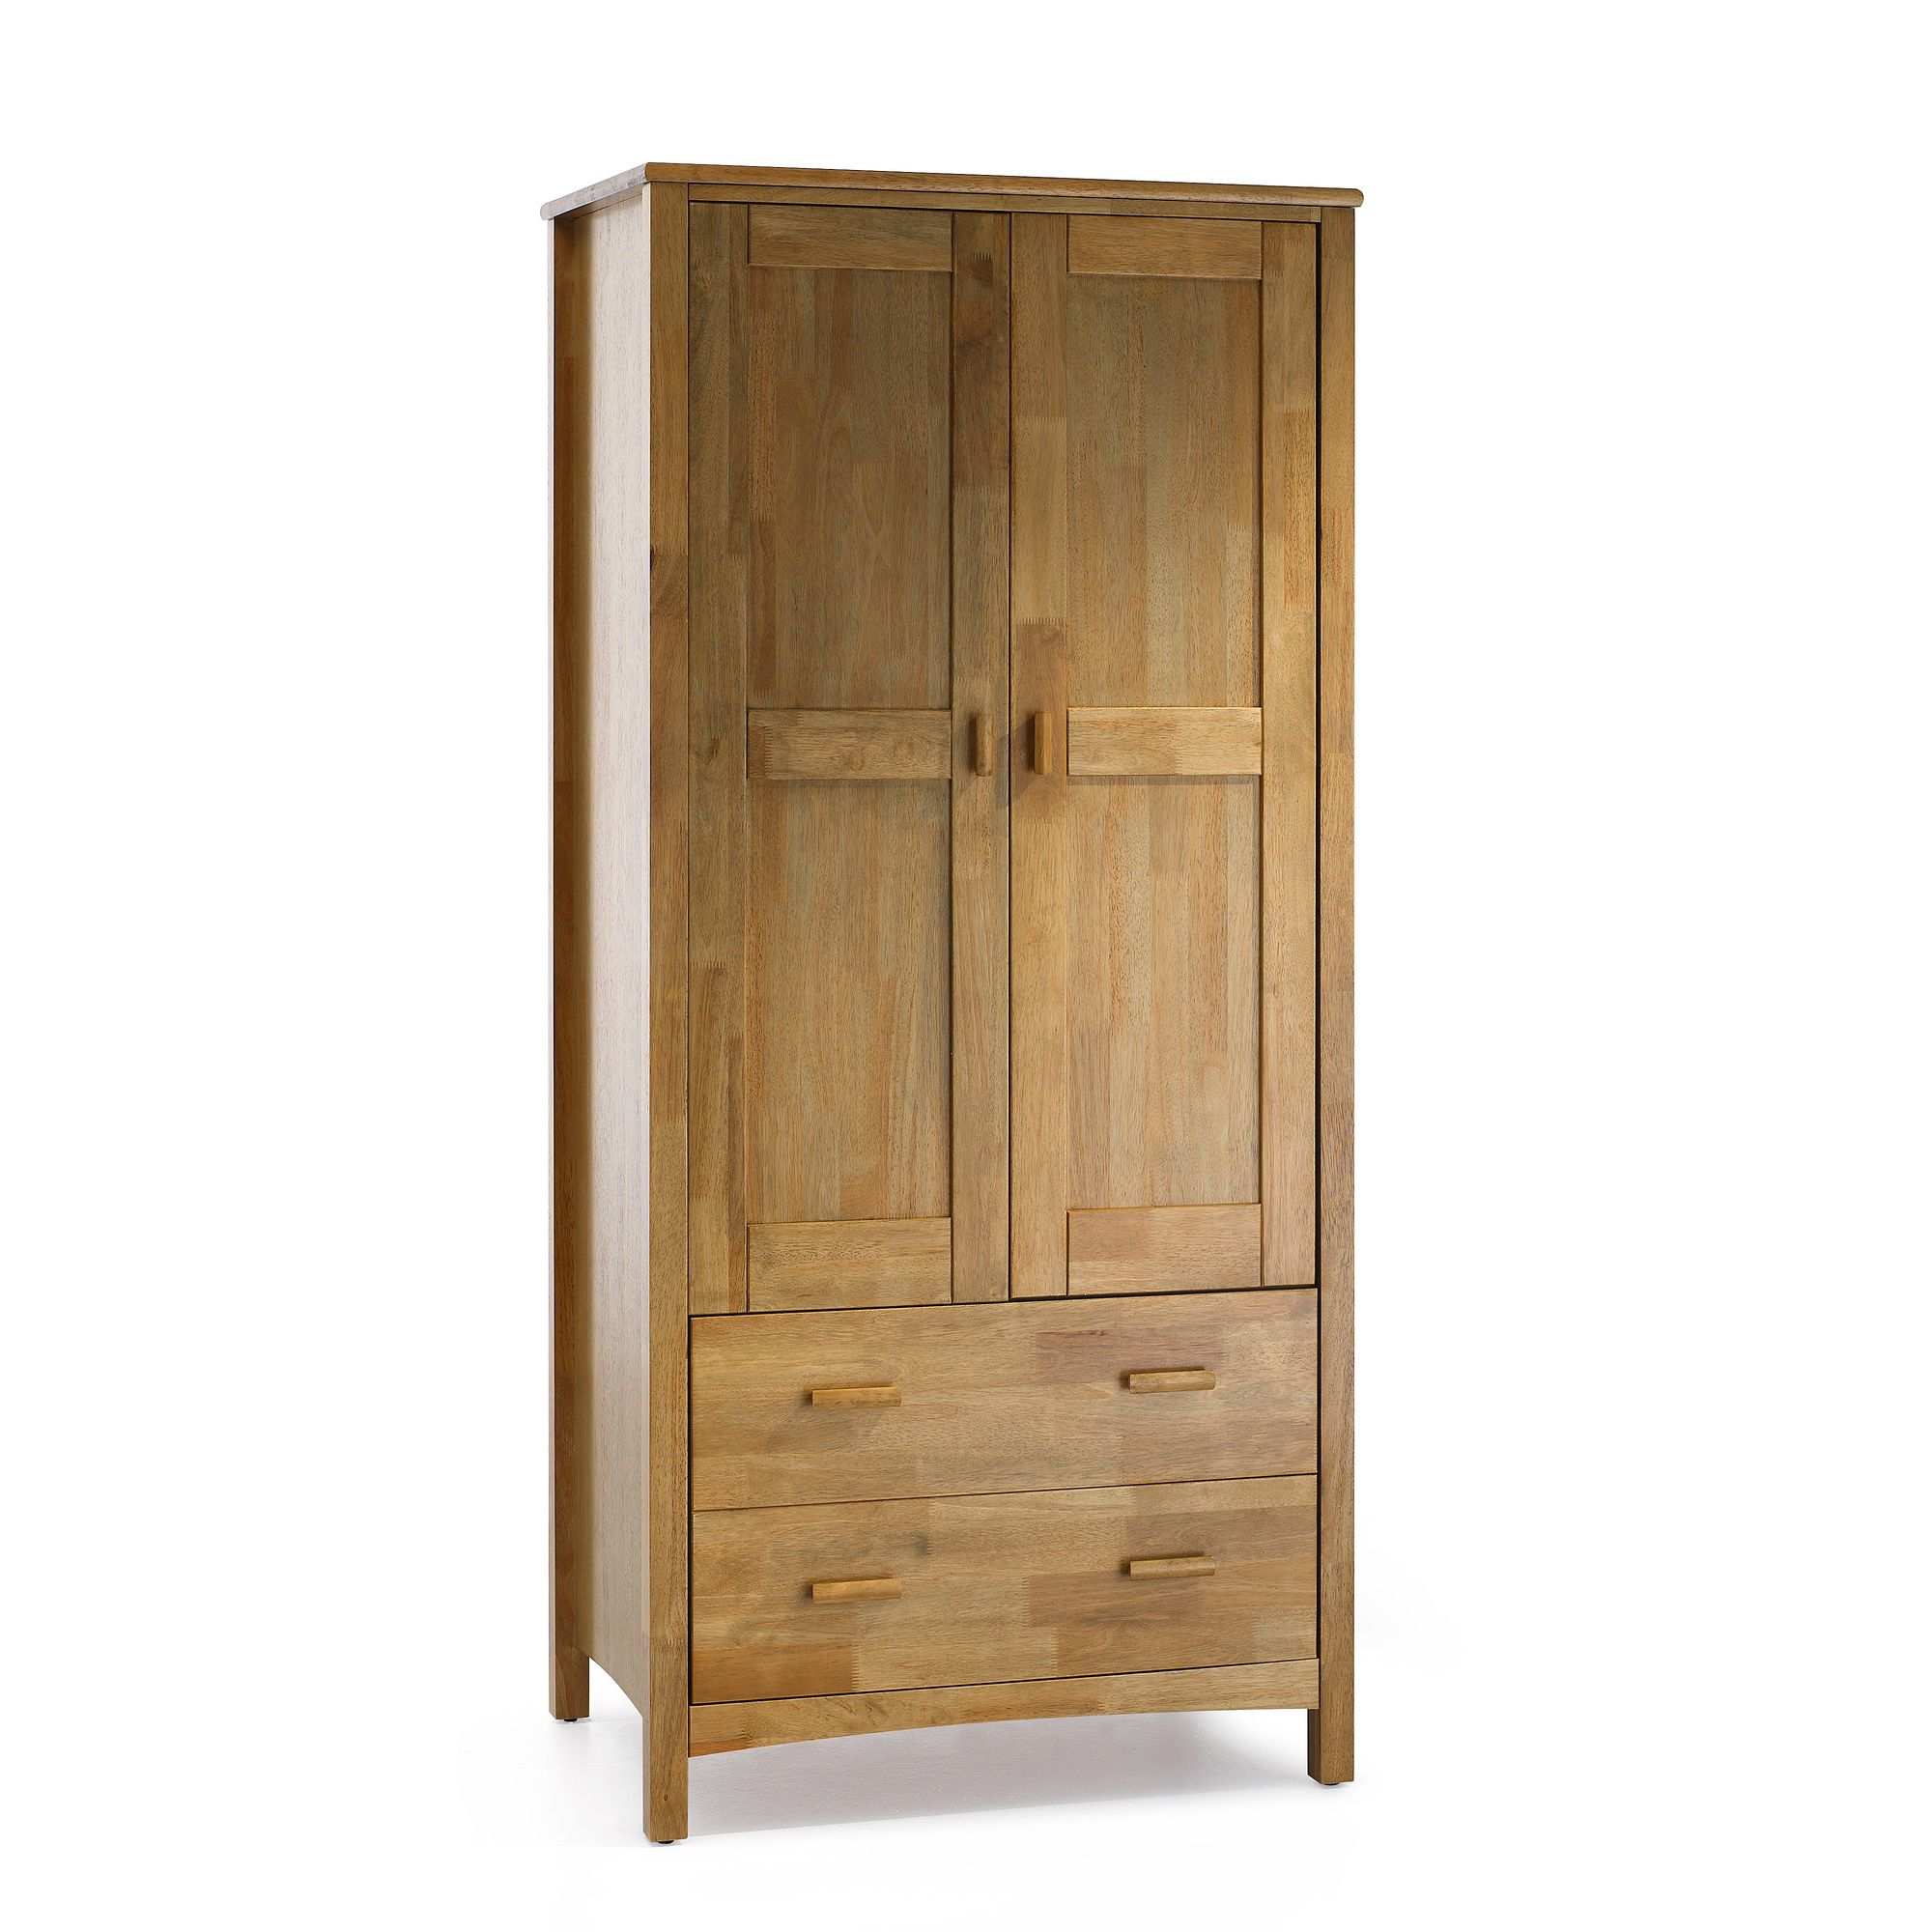 Serene Furnishings Eleanor 2 Door Wardrobe - Honey Oak at Tesco Direct